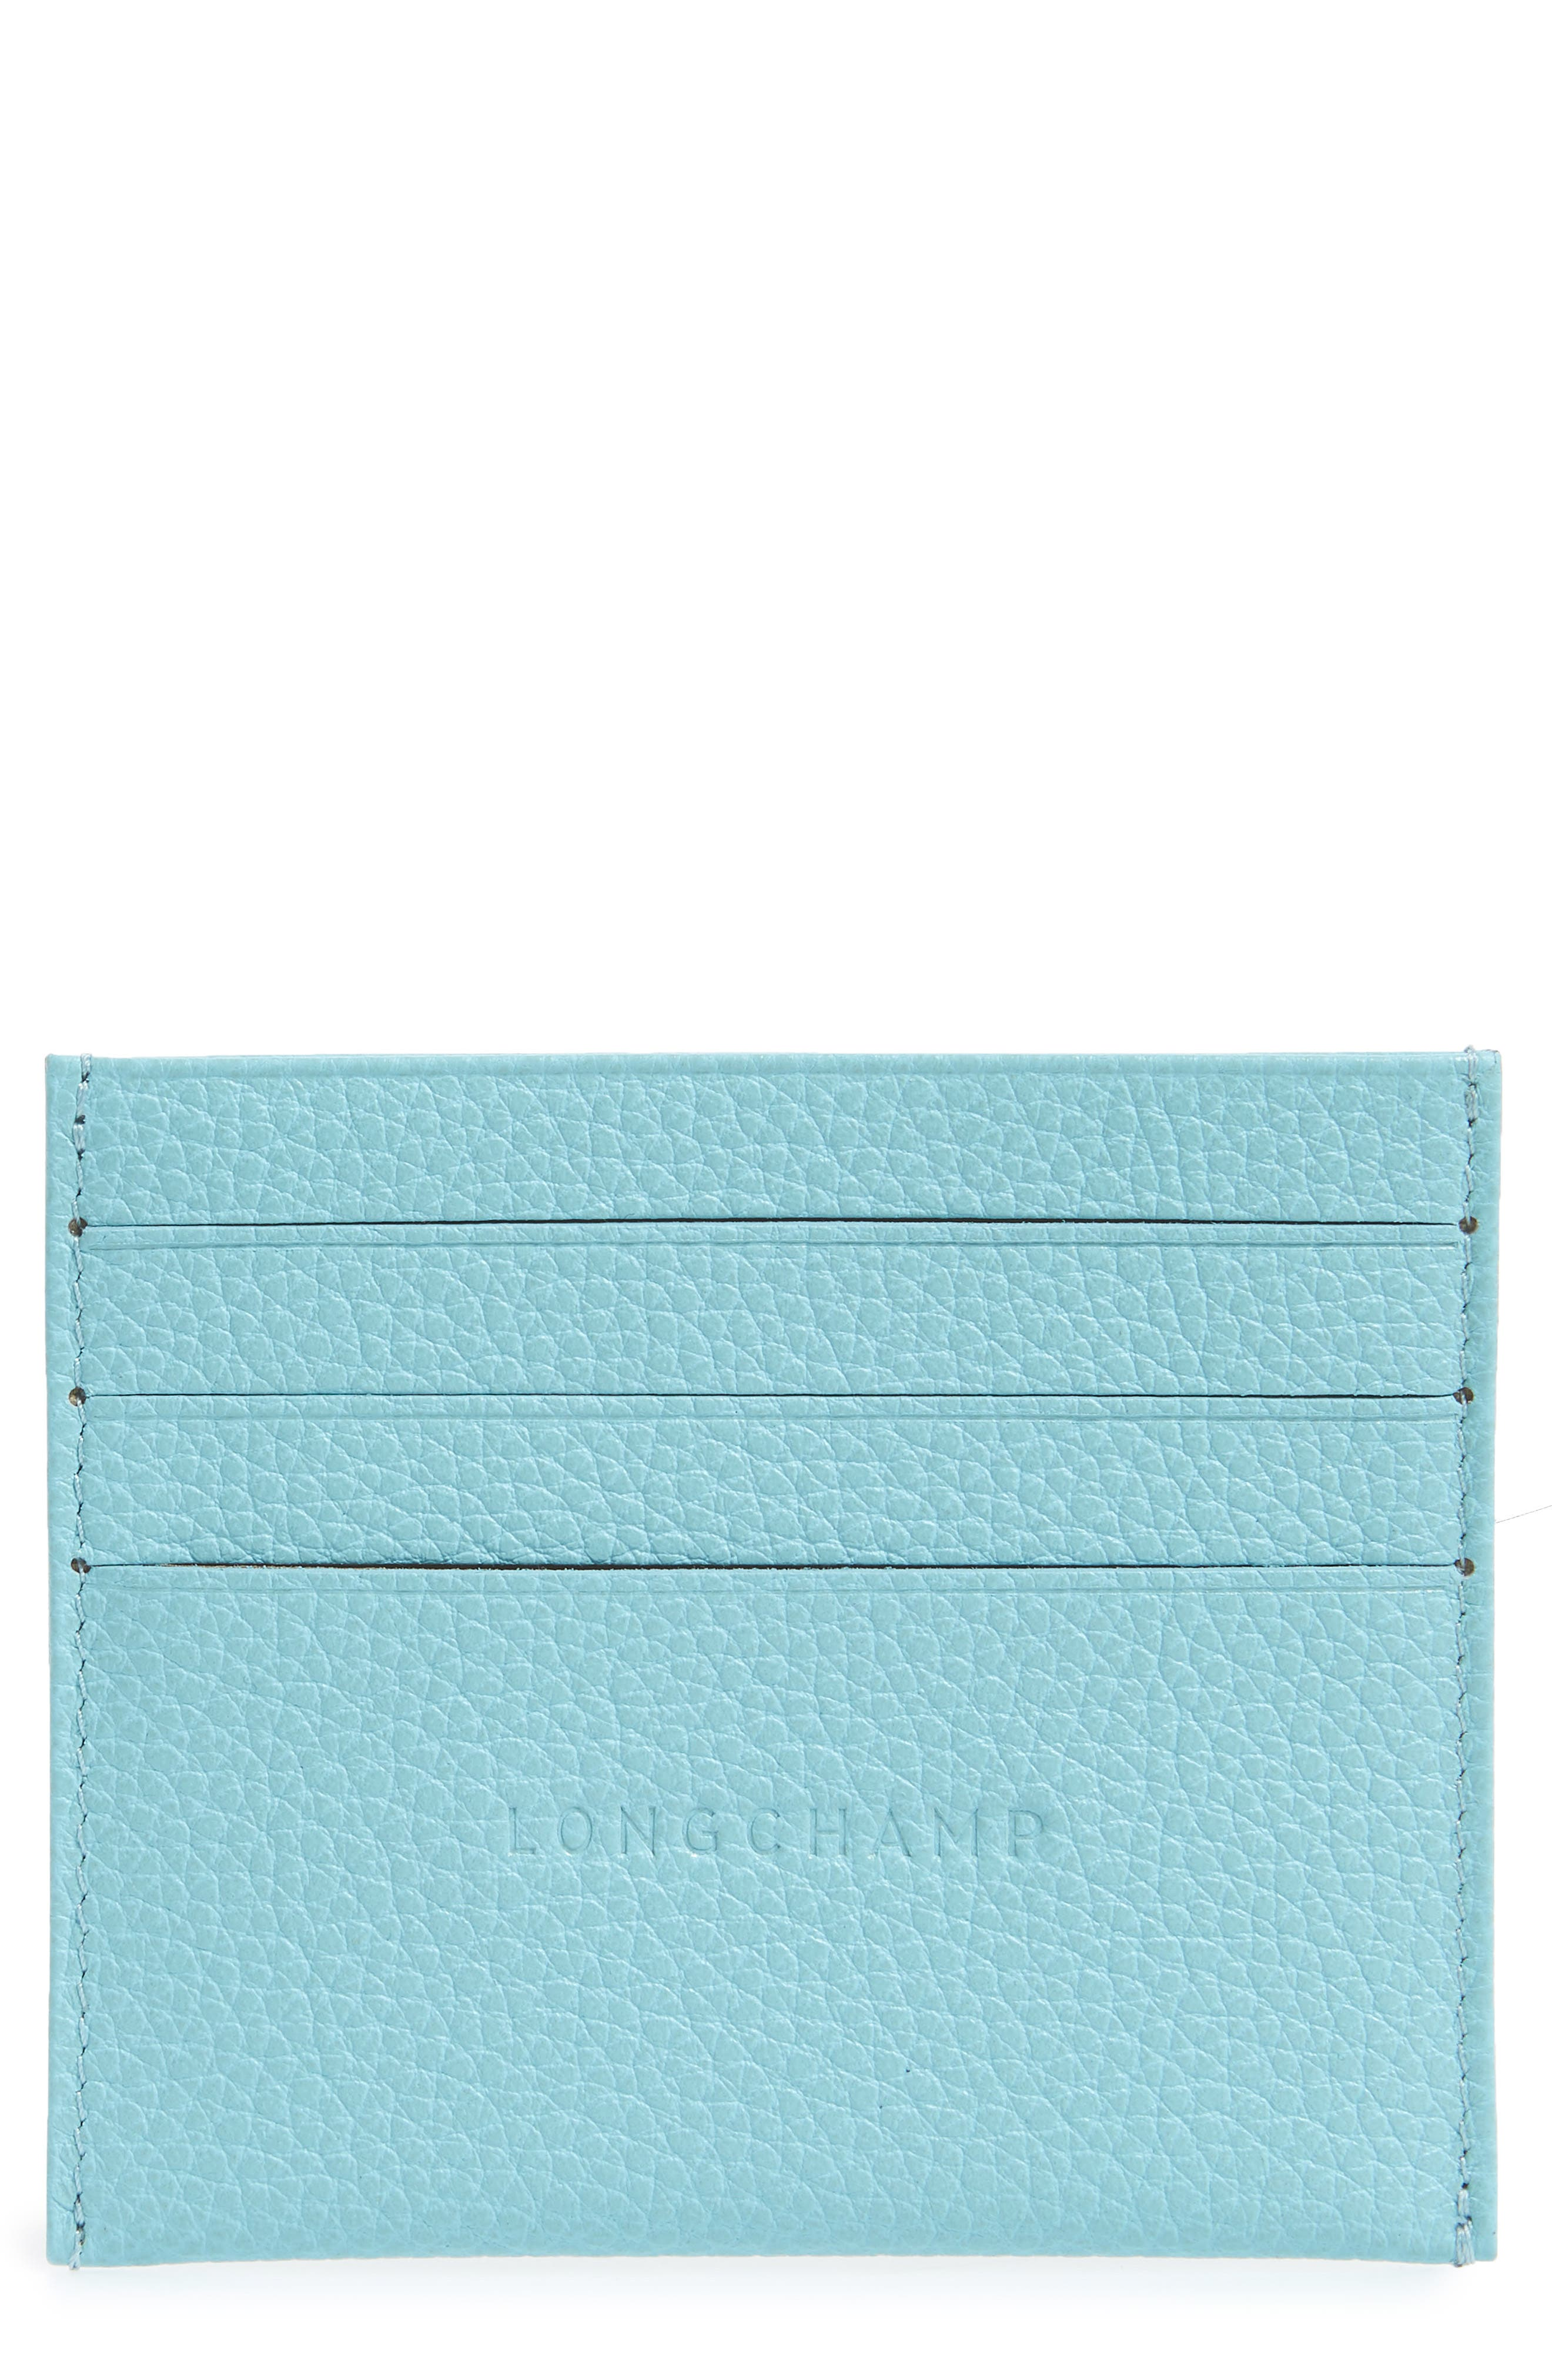 Alternate Image 1 Selected - Longchamp 'Le Foulonne' Pebbled Leather Card Holder